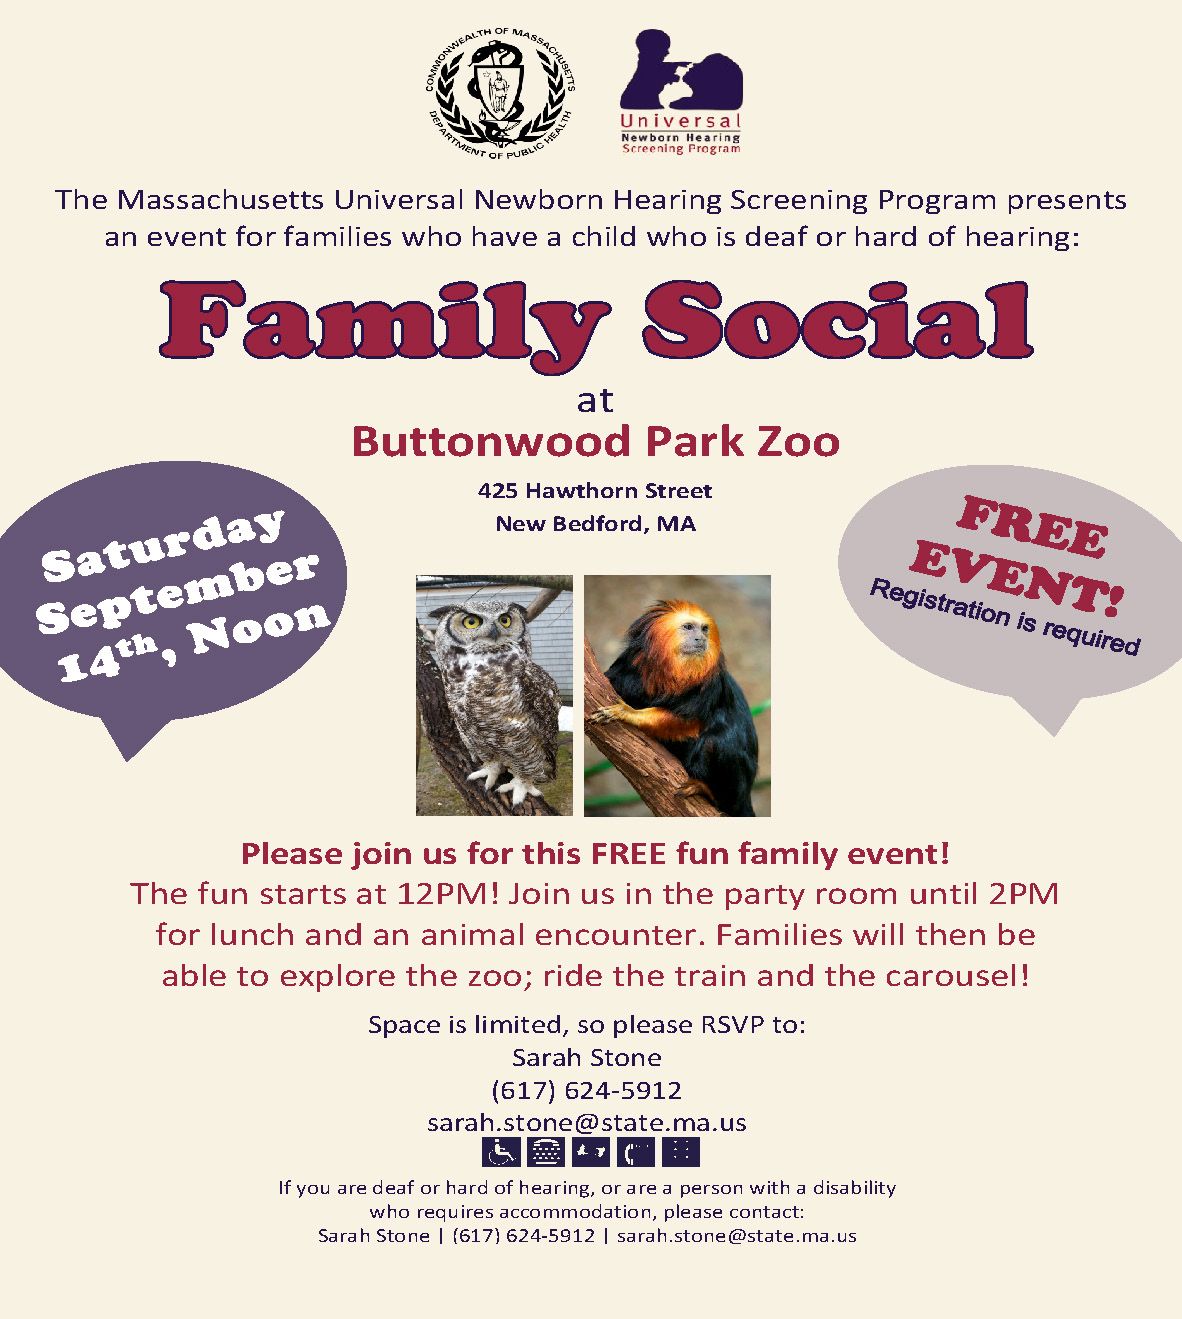 Family event at Buttonwood Park Zoo